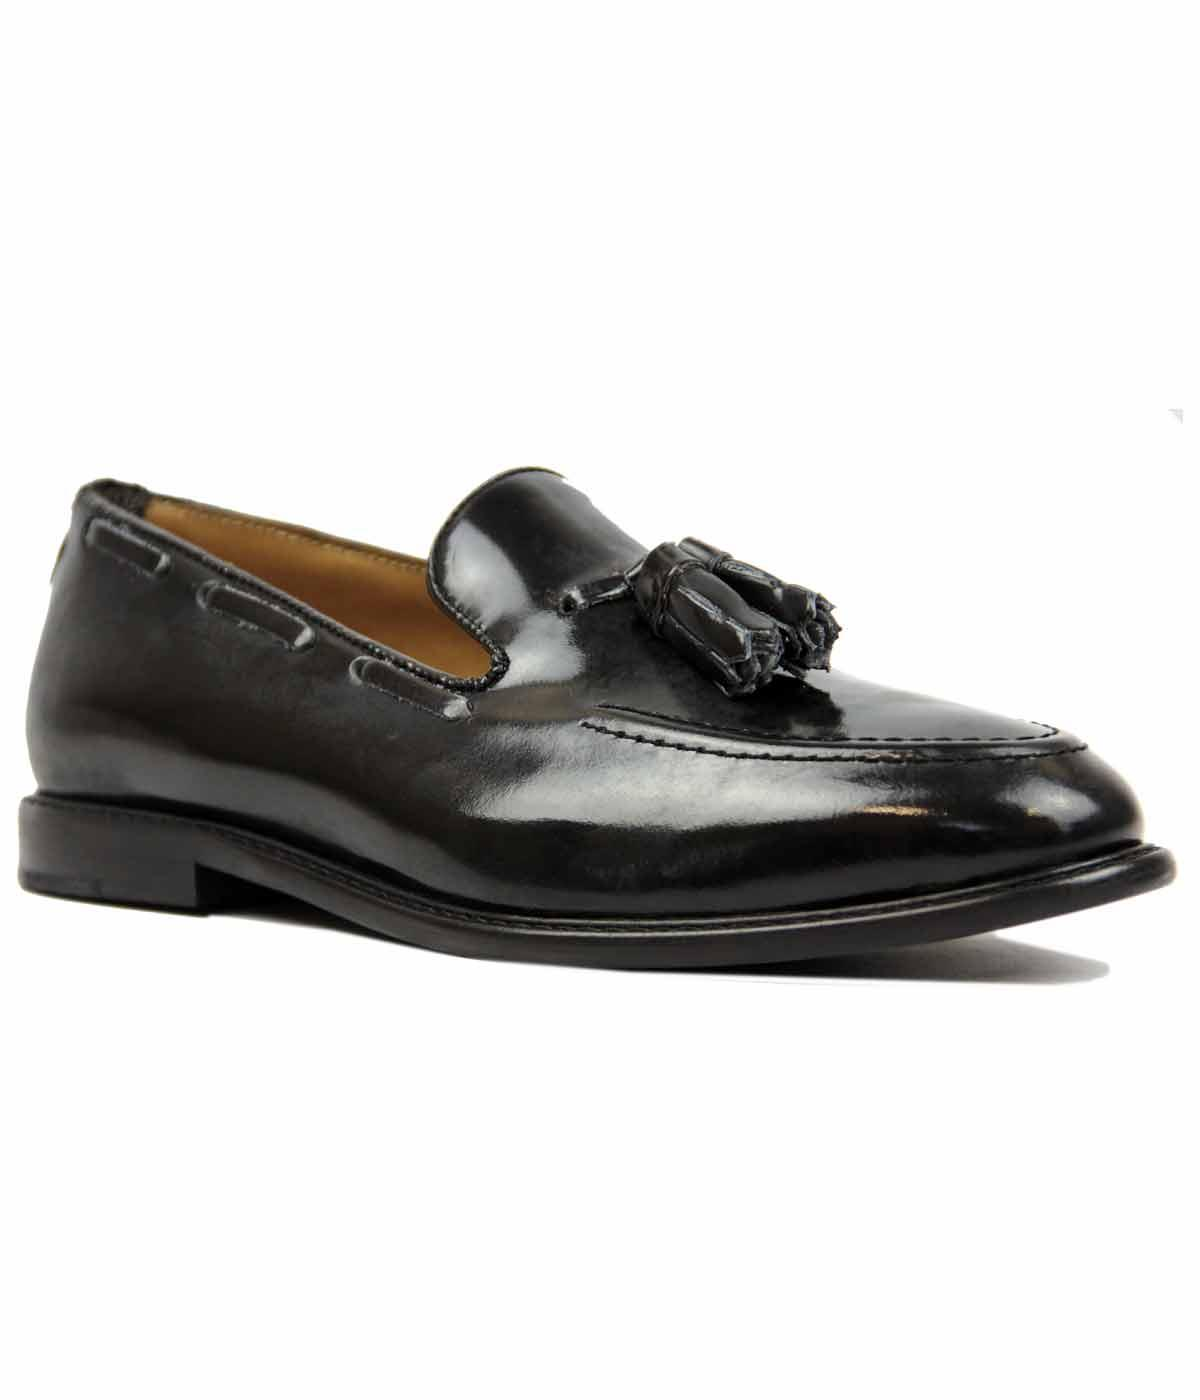 Alfr City Loafer BEN SHERMAN Retro Mod Loafers (B)